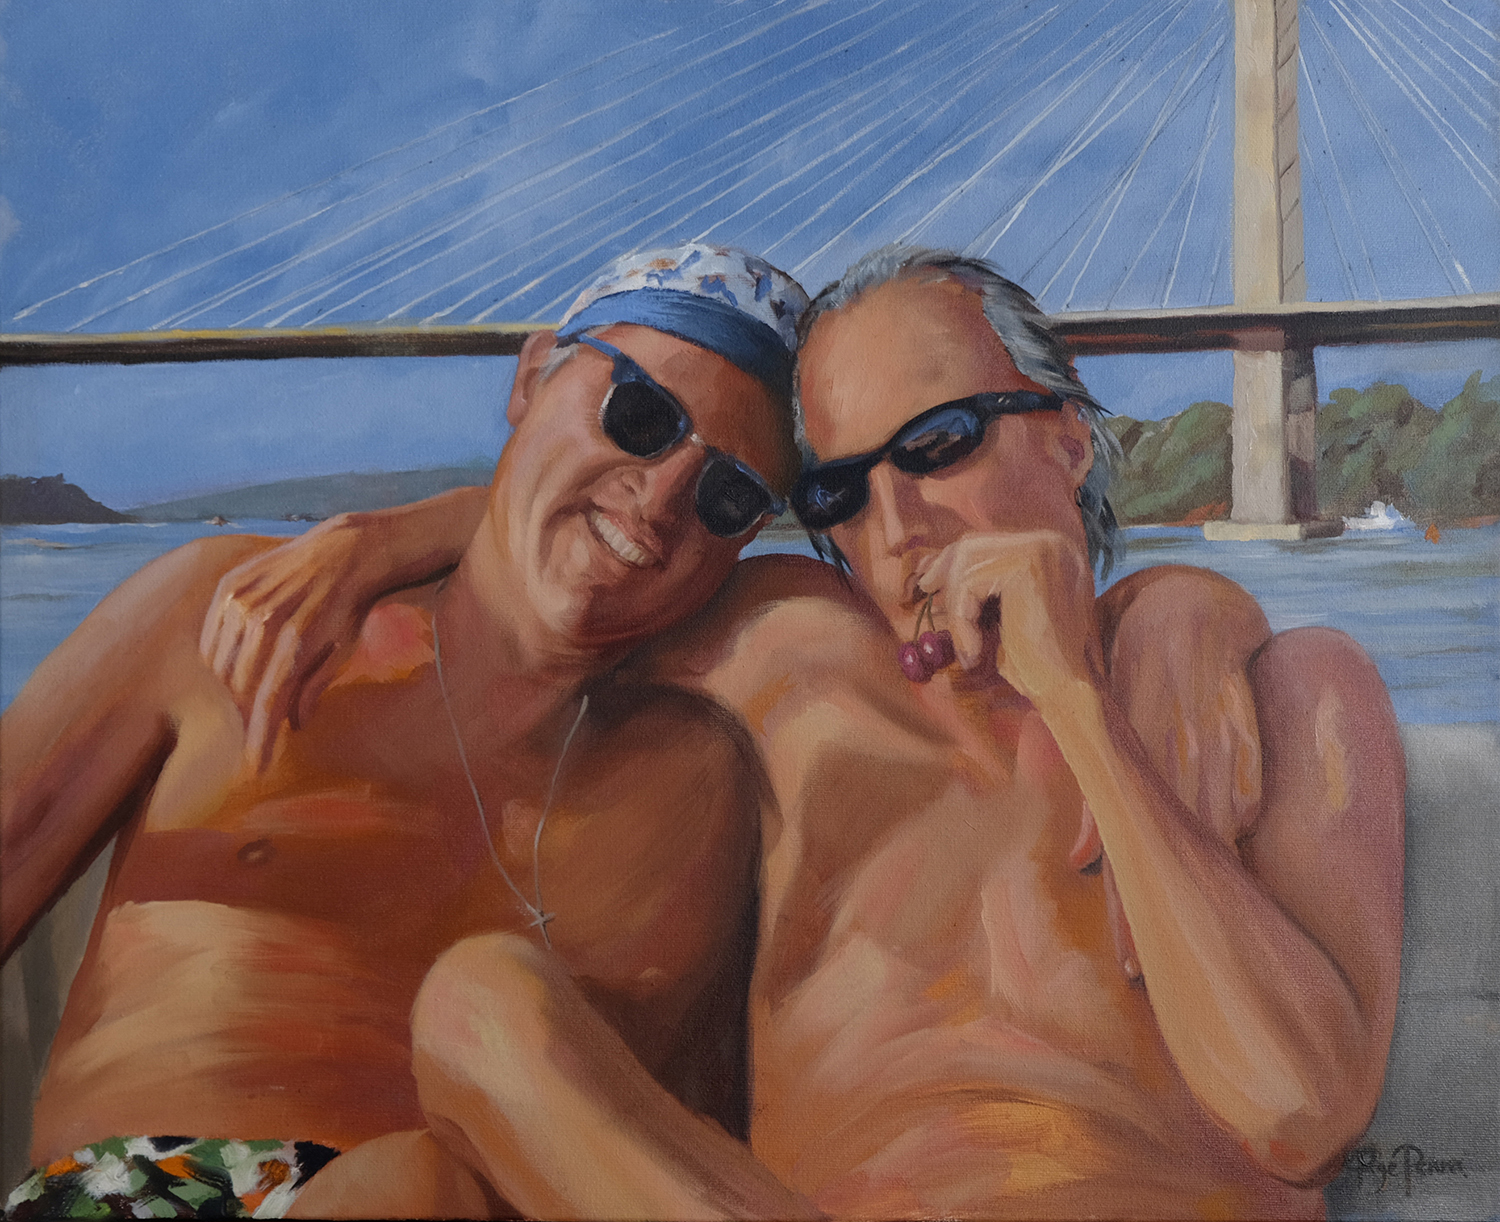 """Burleigh & Johnny"" by Page Penna, Oil on linen, 16x20in, 2017, Private collection."